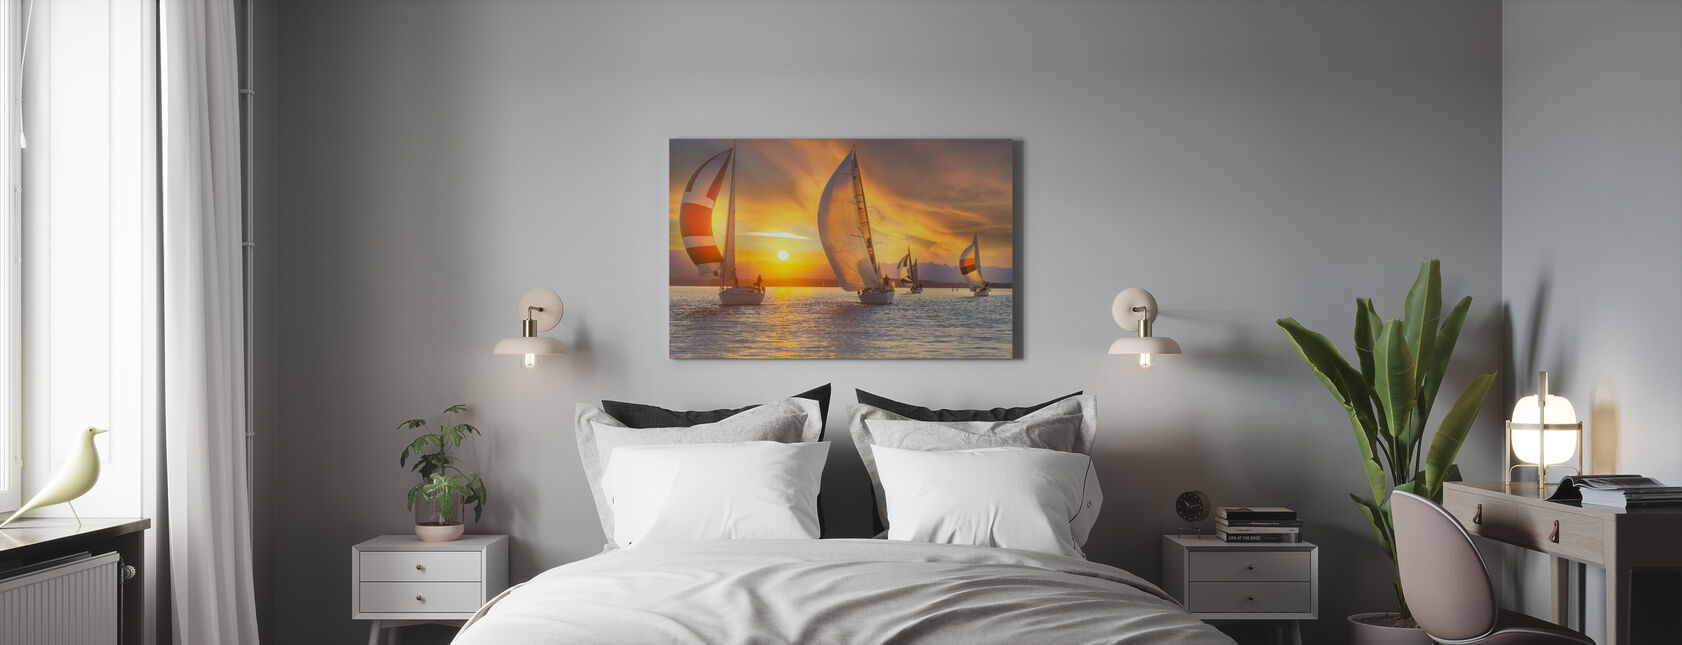 Sail Under the Sunset - Canvas print - Bedroom